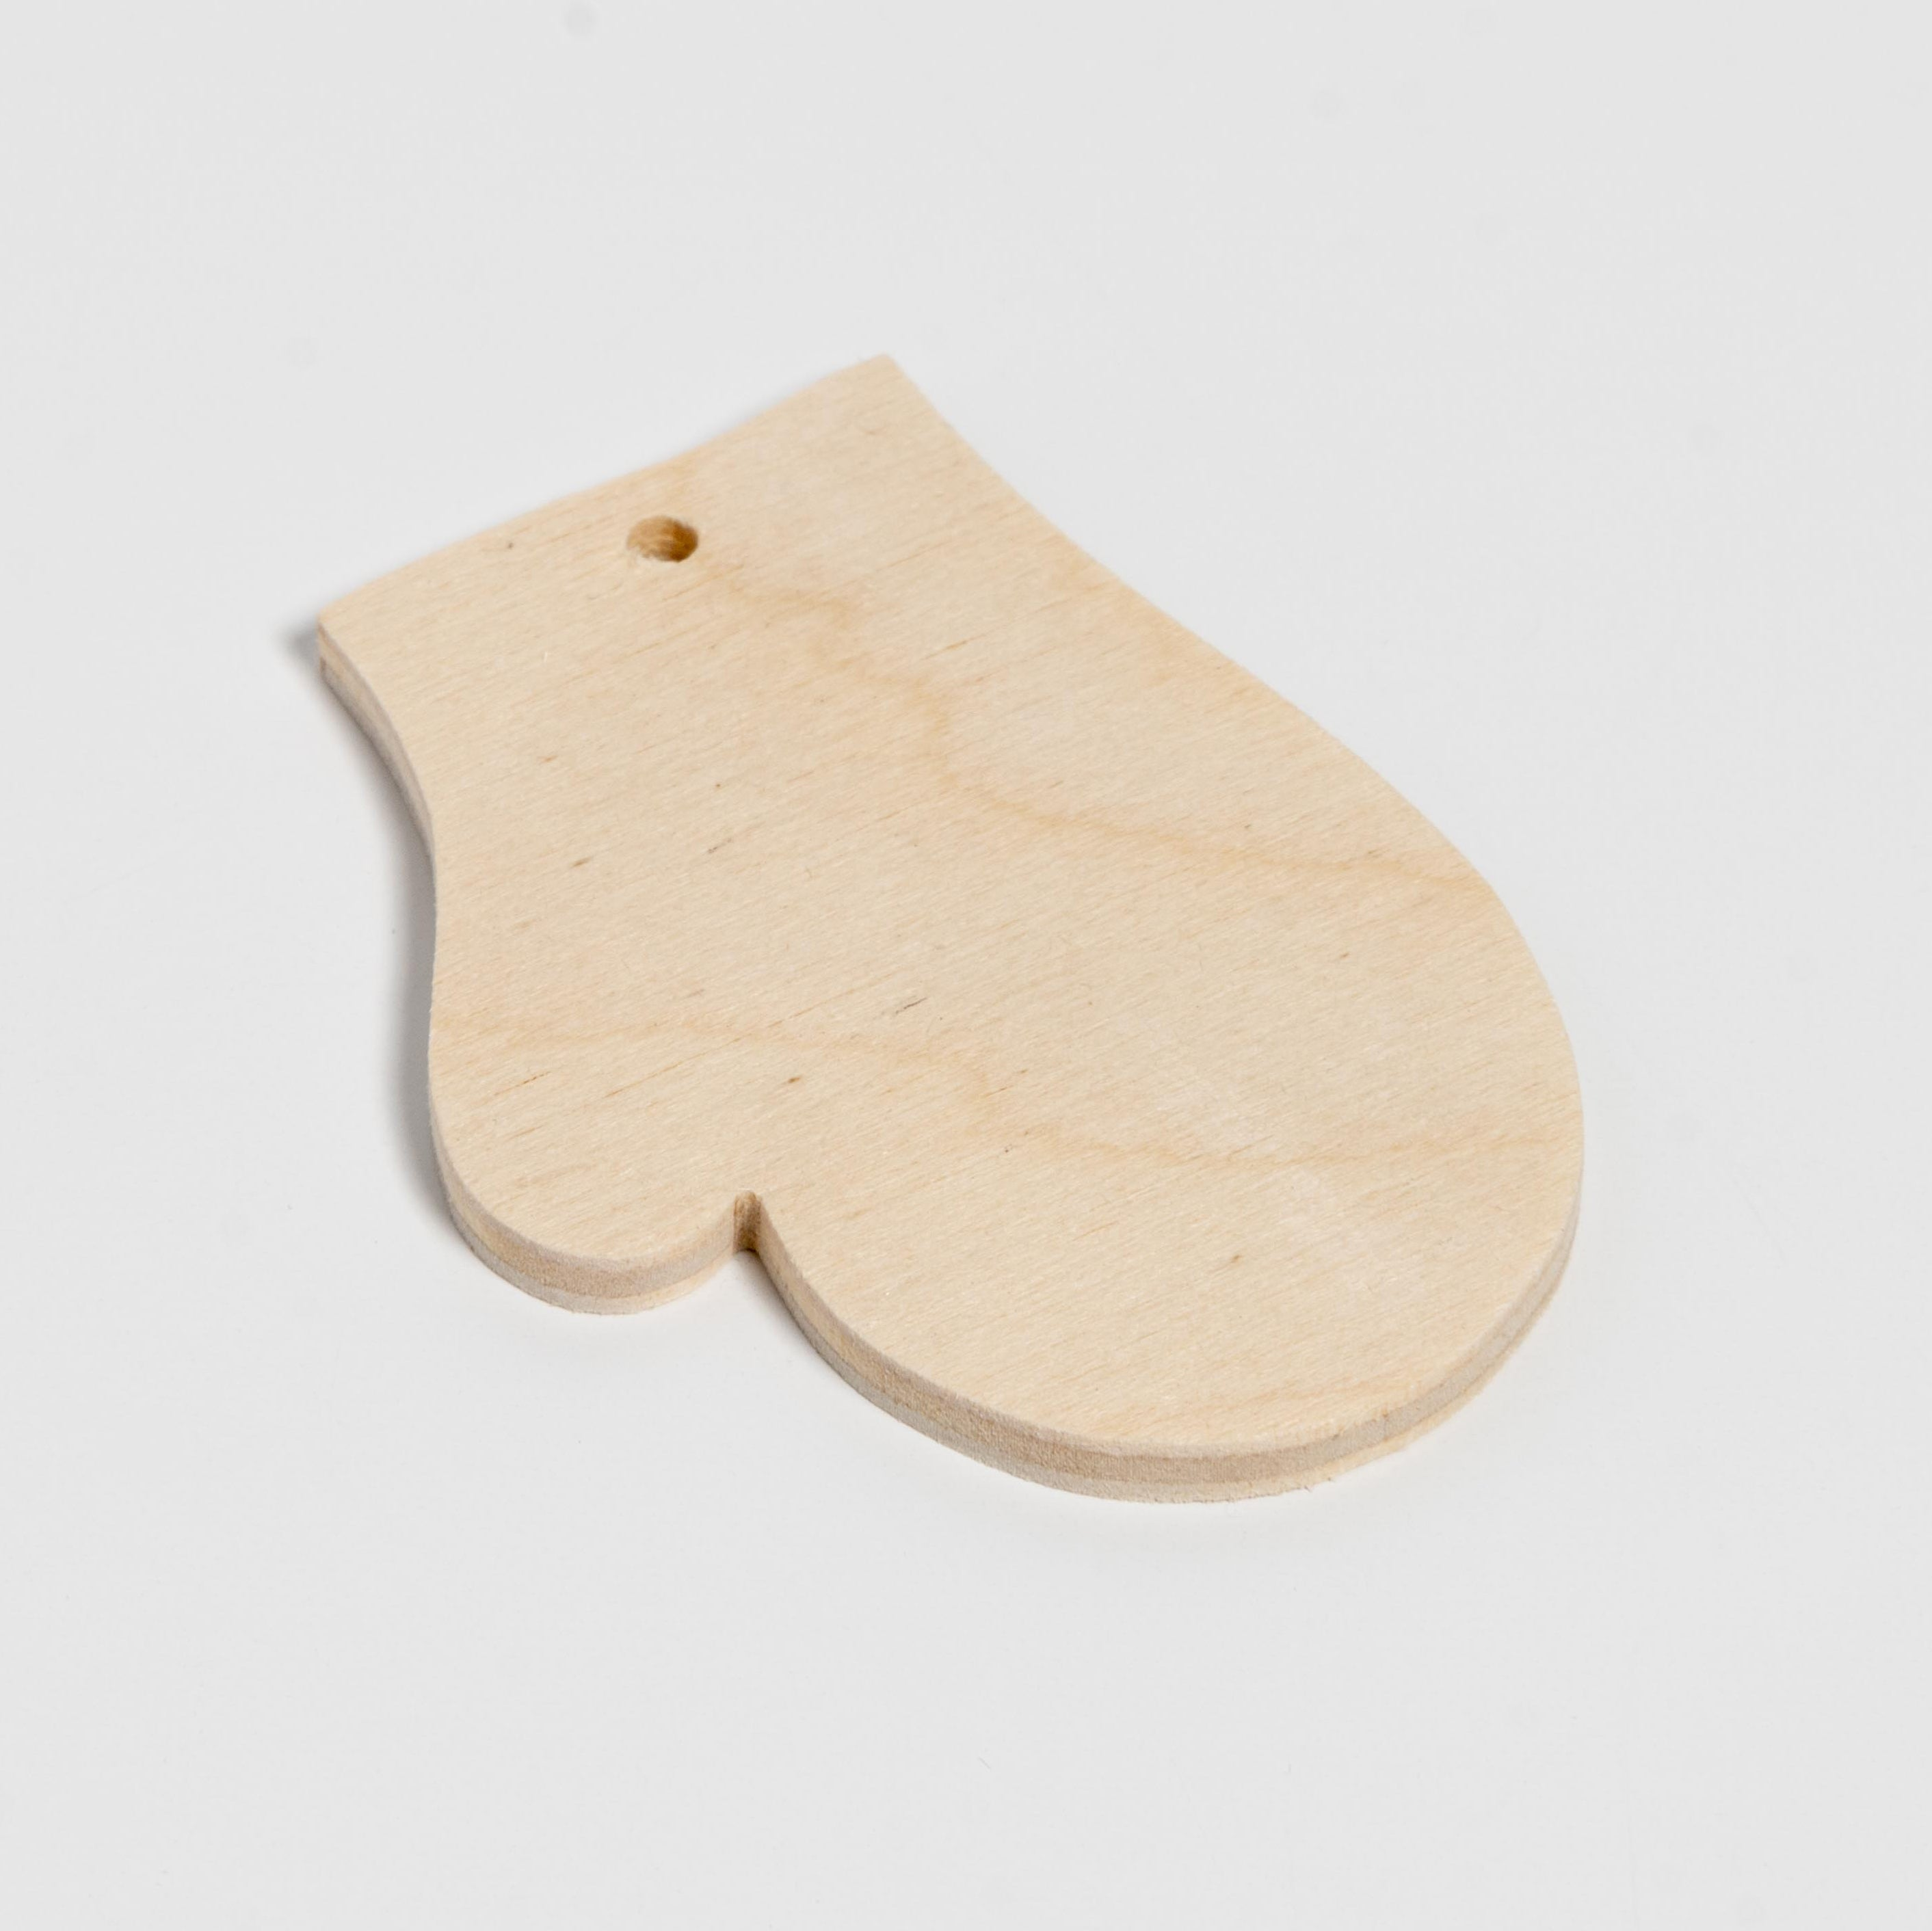 Small Mitten Wooden Ornament Default Title